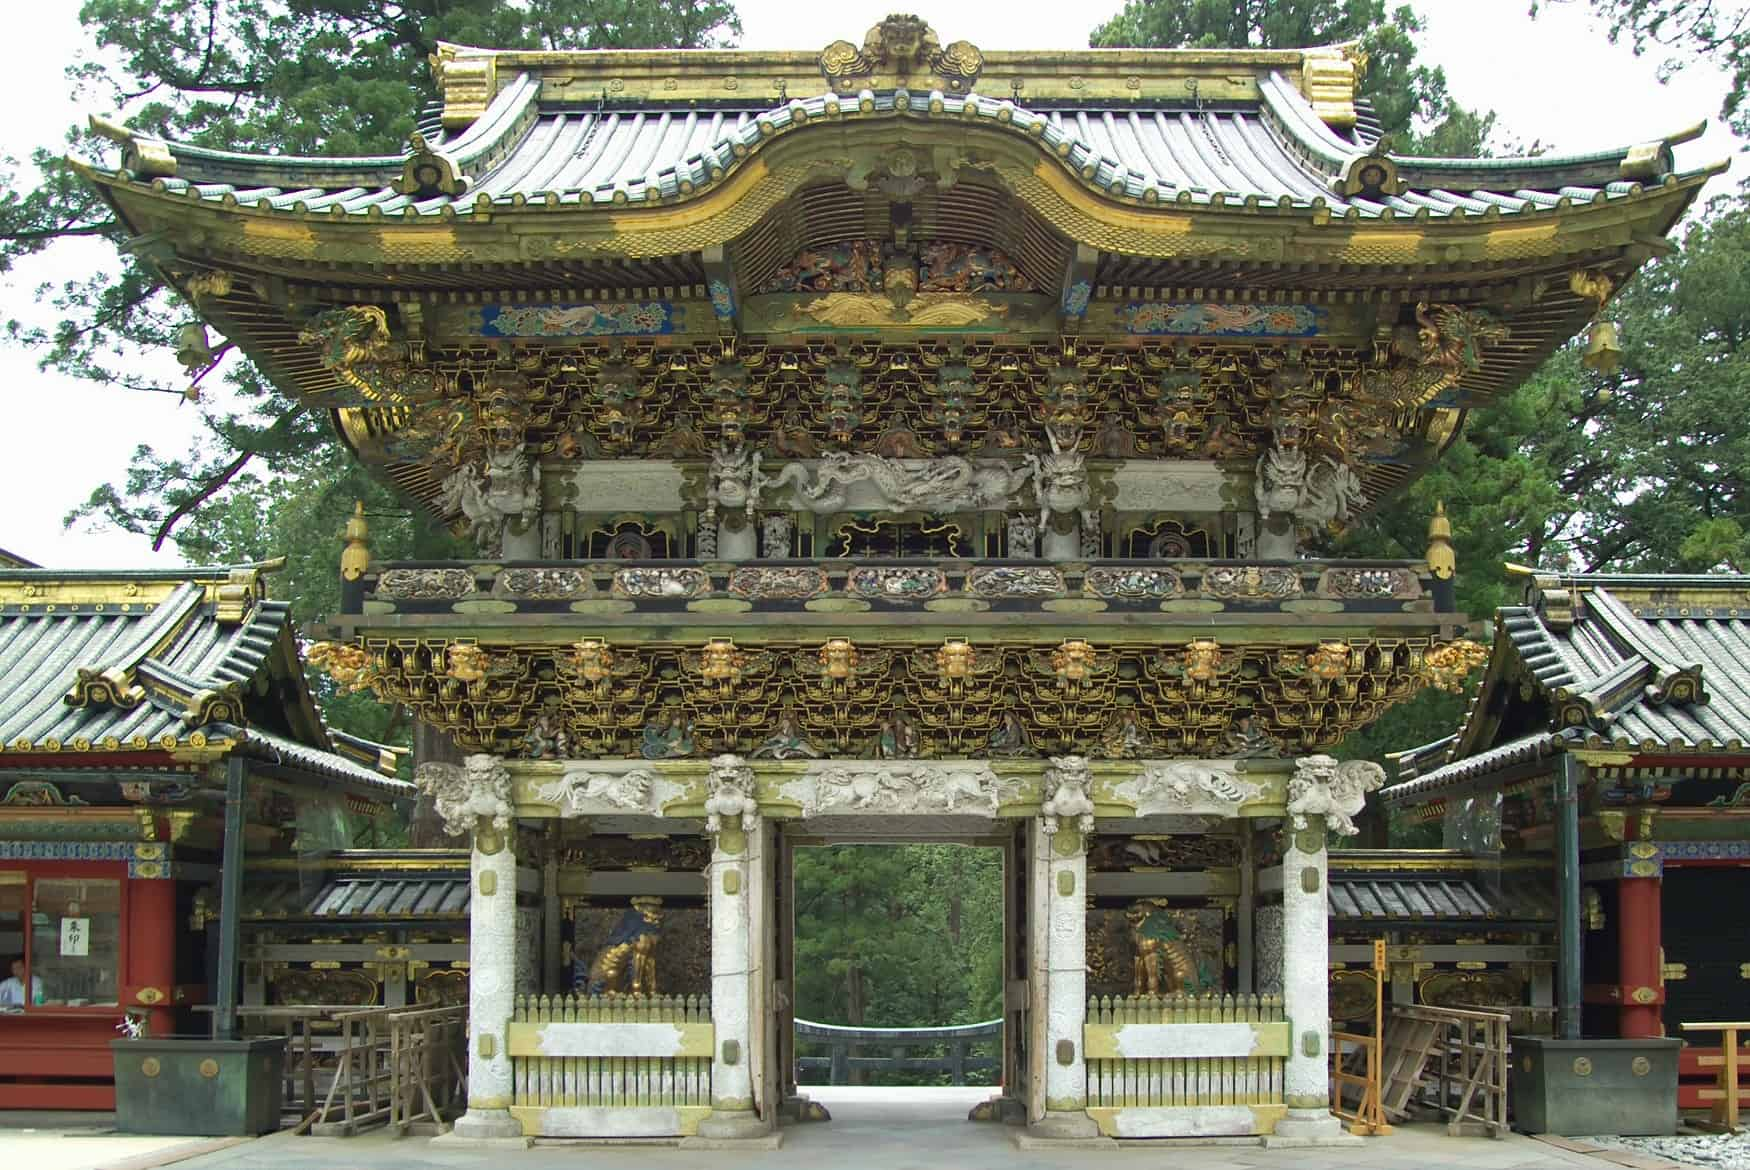 Nikko UNESCO World Heritage Site